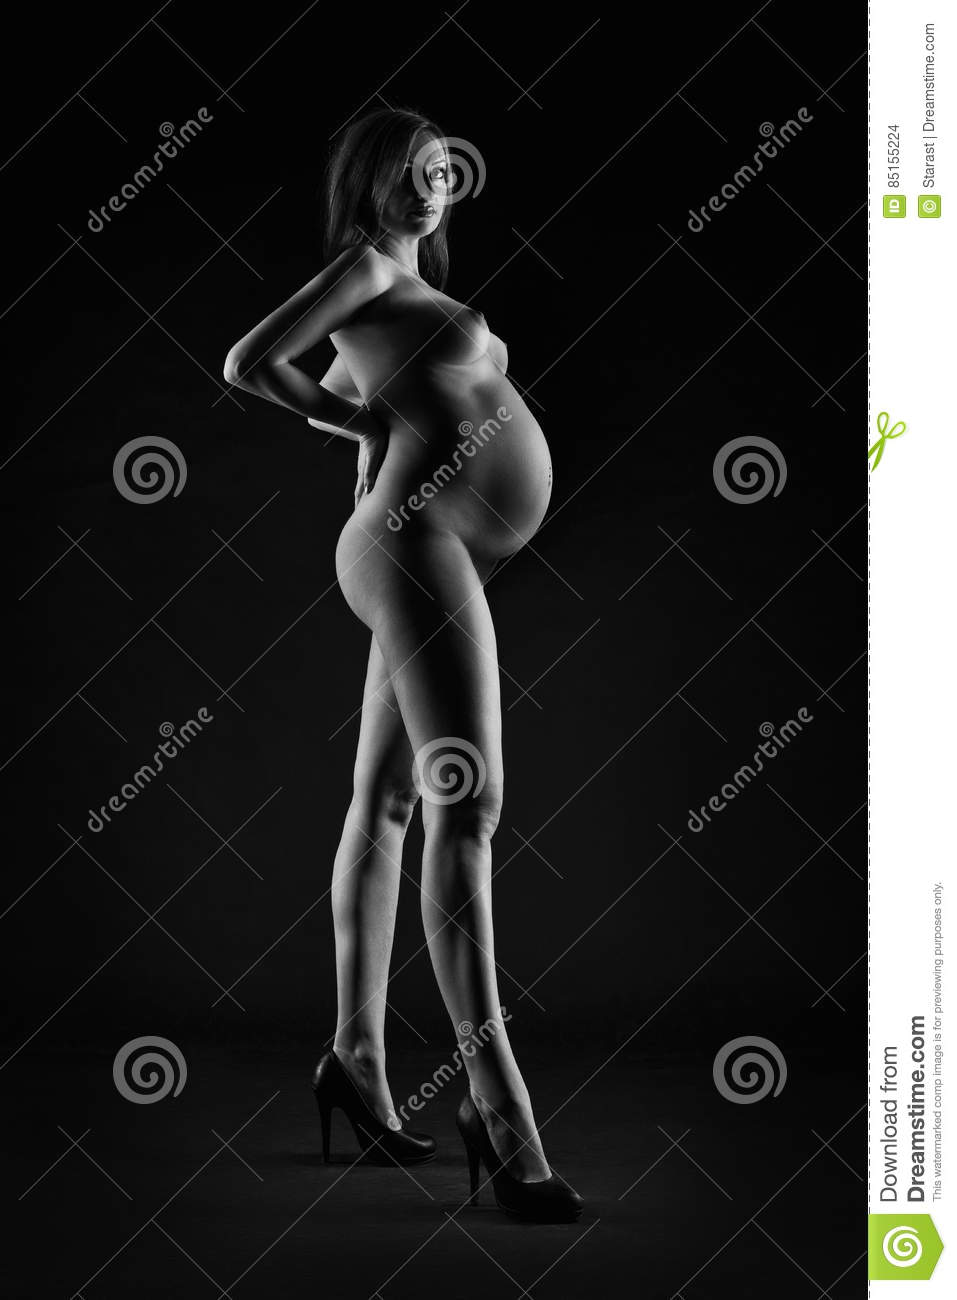 Most Sexygirls Naked Beautiful Pregnancy Photos